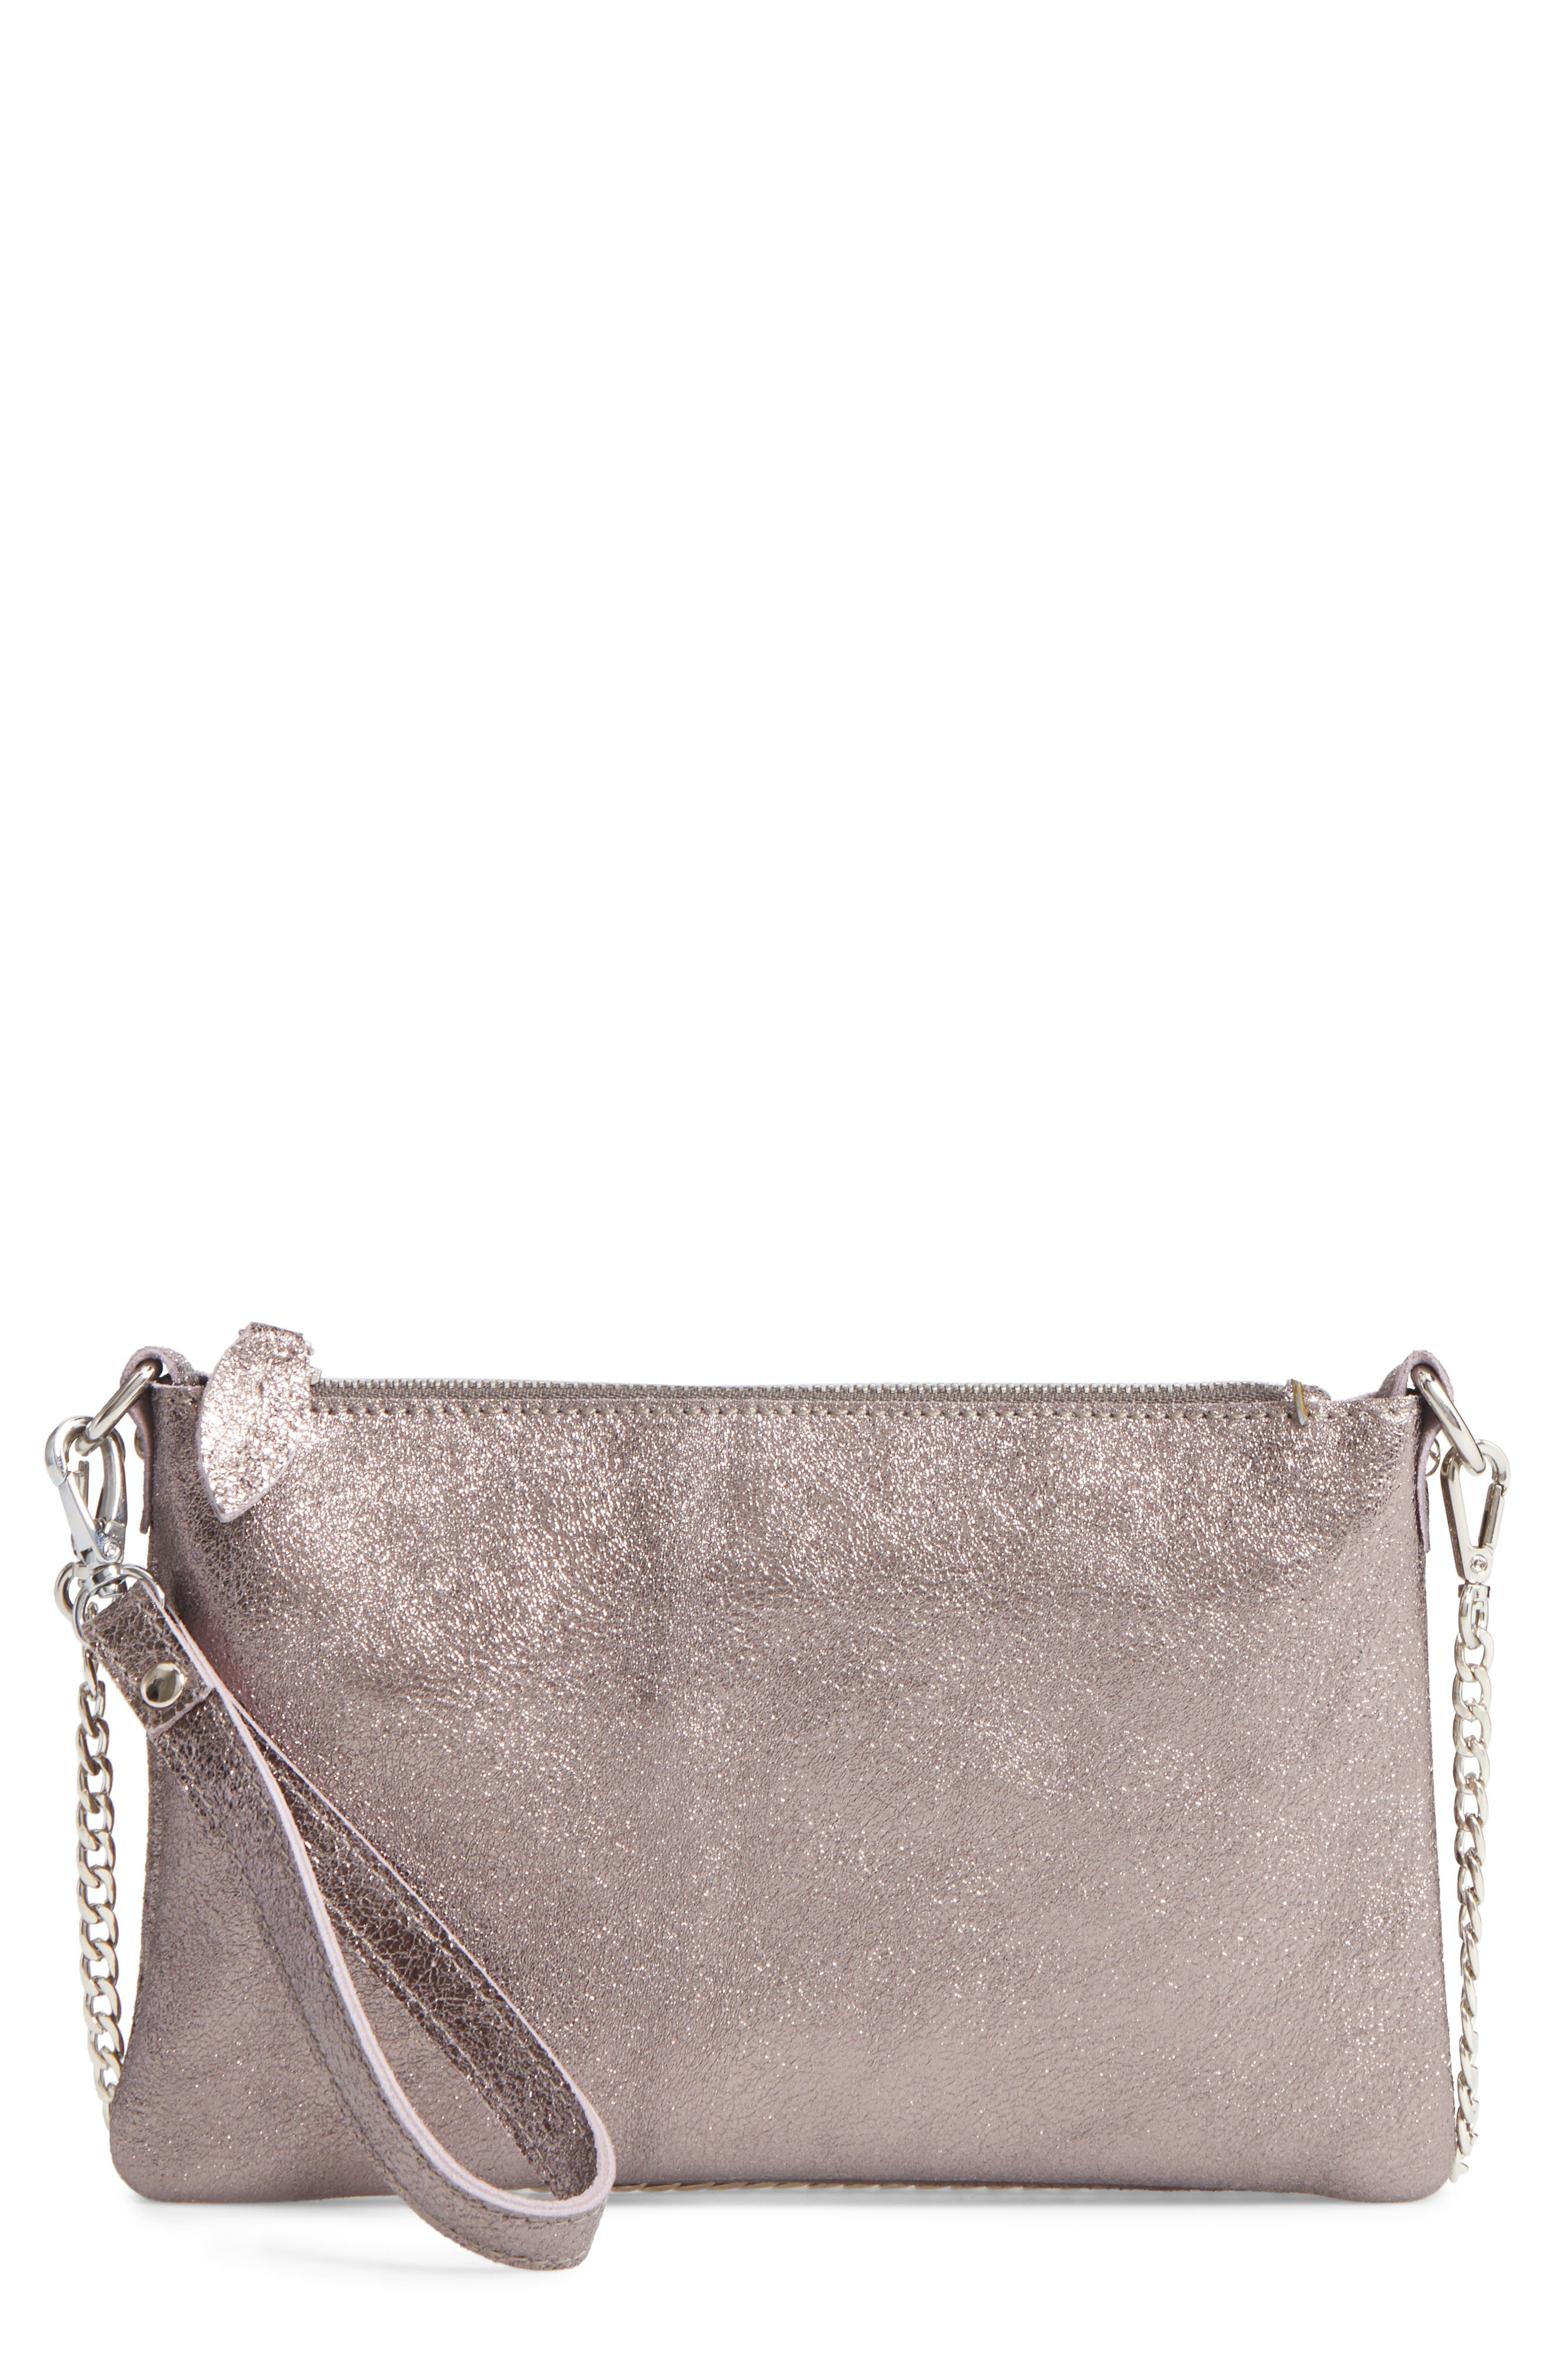 Street Level Leather Crossbody Bag